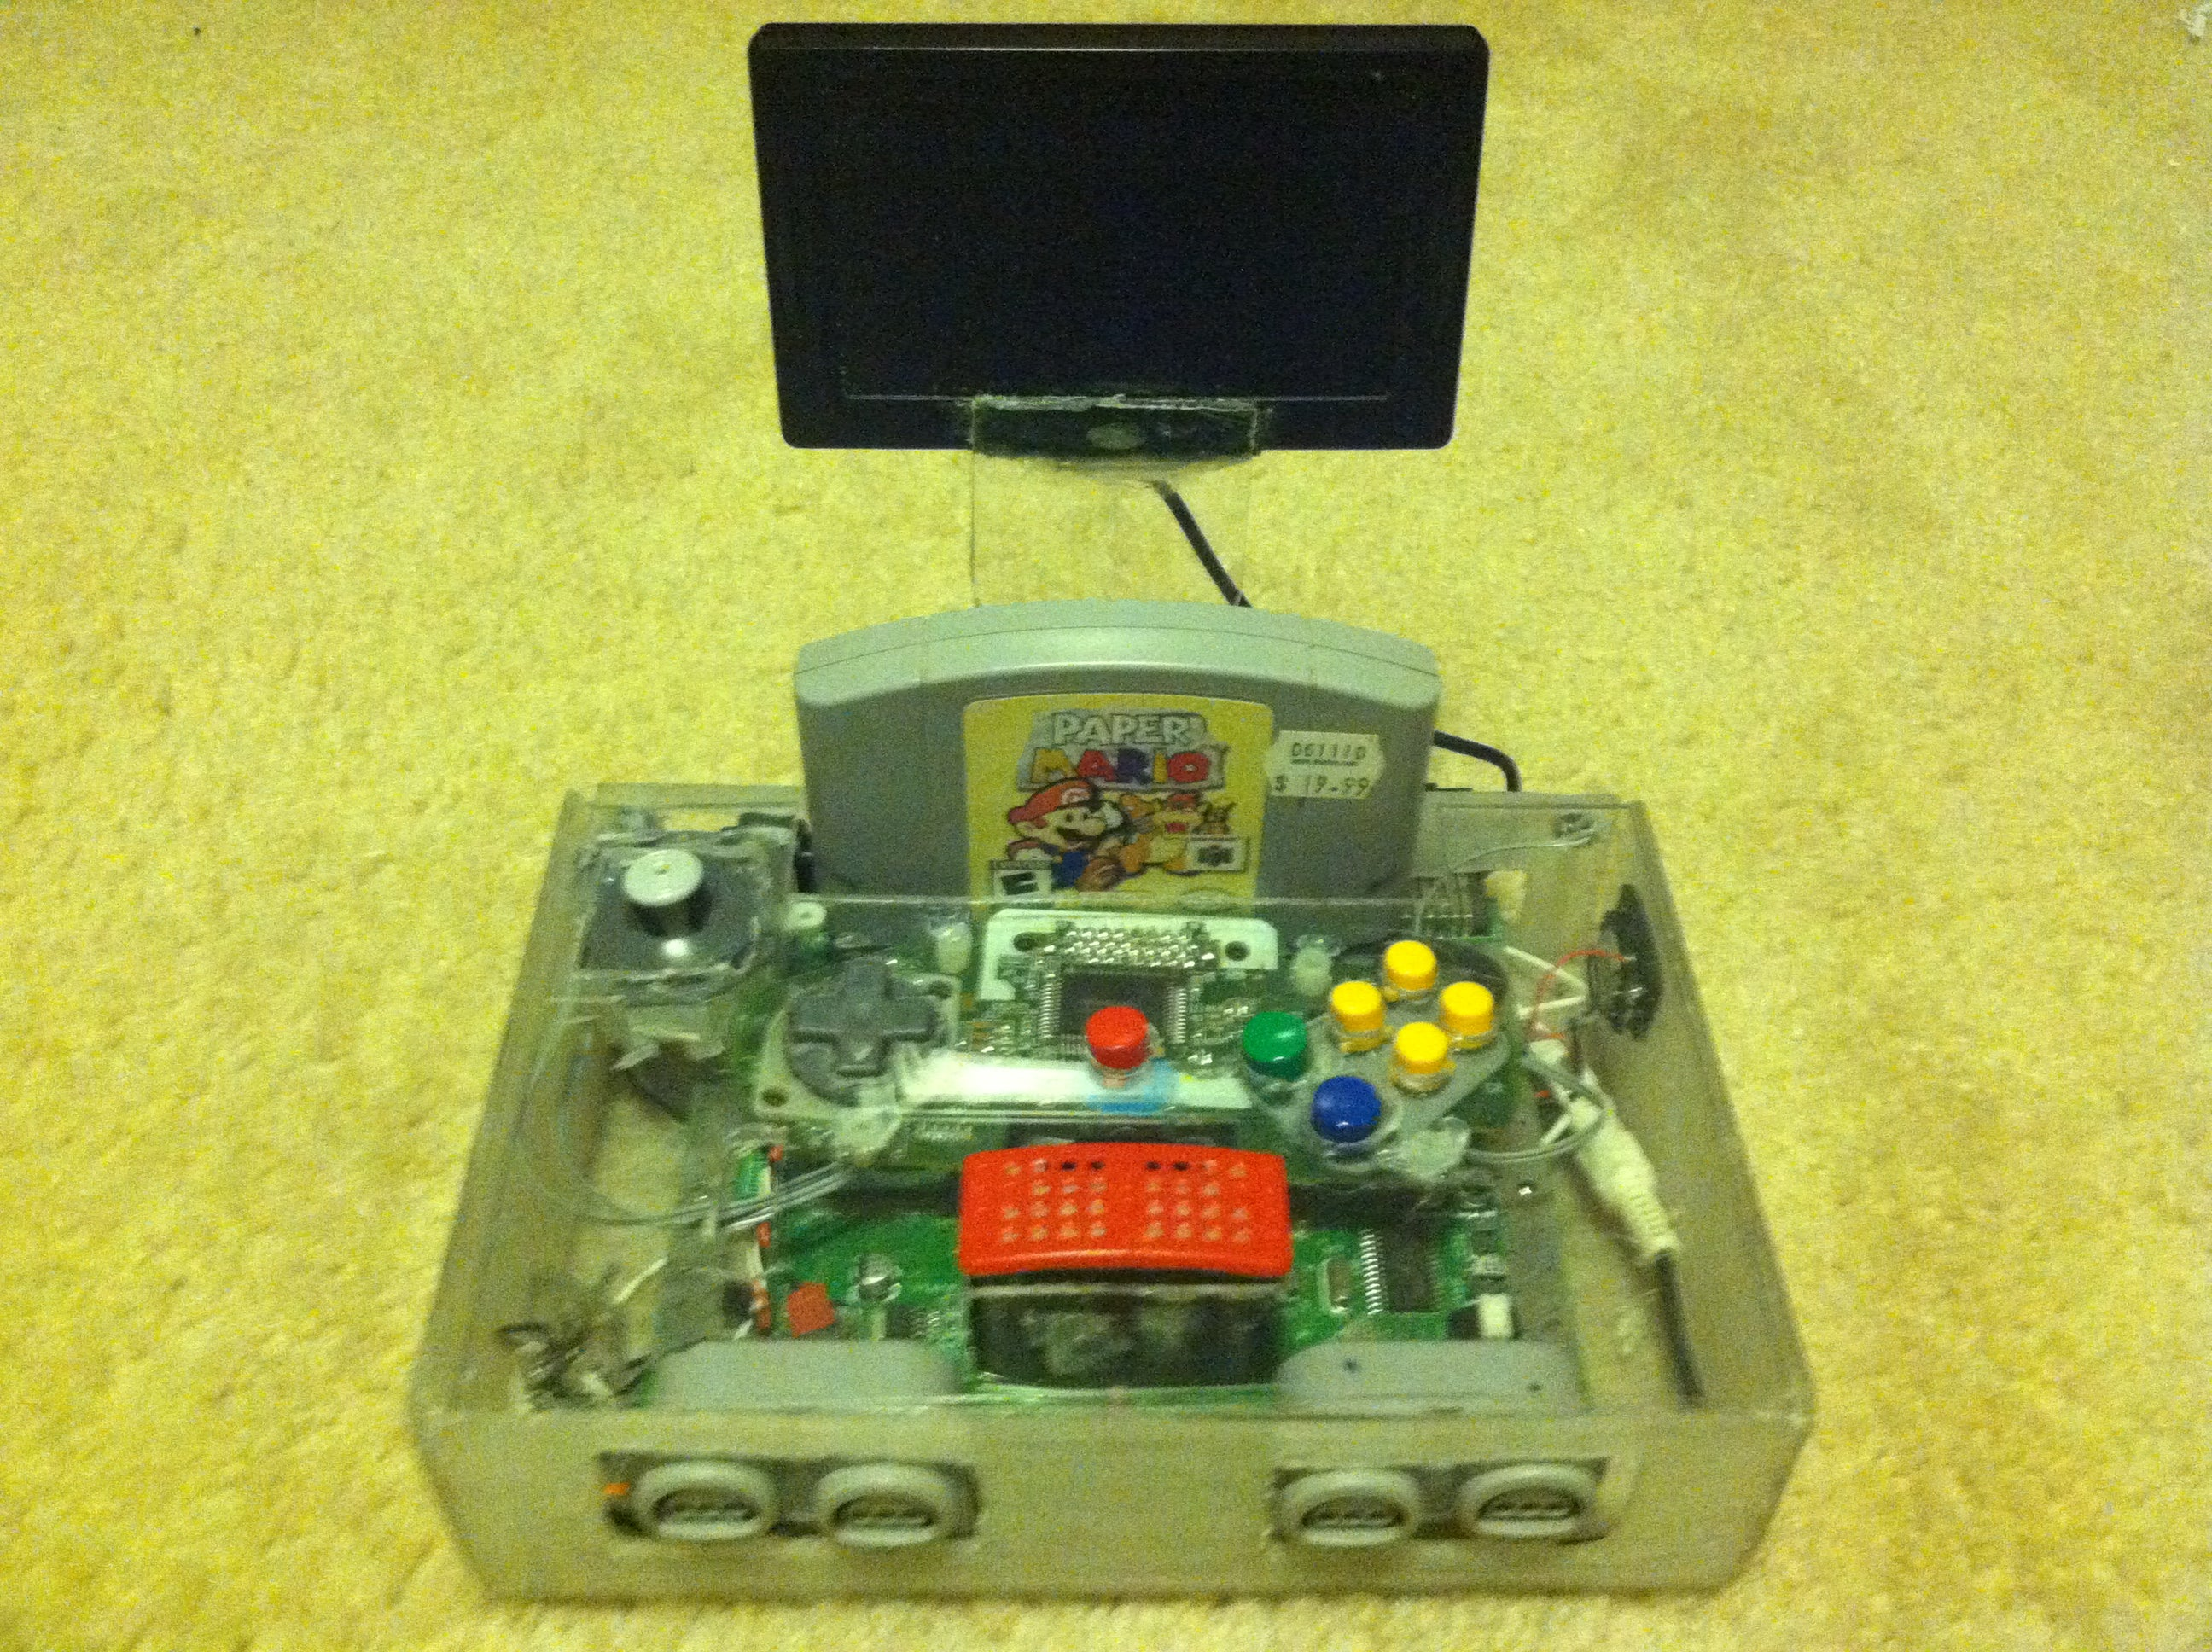 How to Make a Portable Nintendo 64 (steps) : 8 Steps (with Pictures) -  InstructablesInstructables